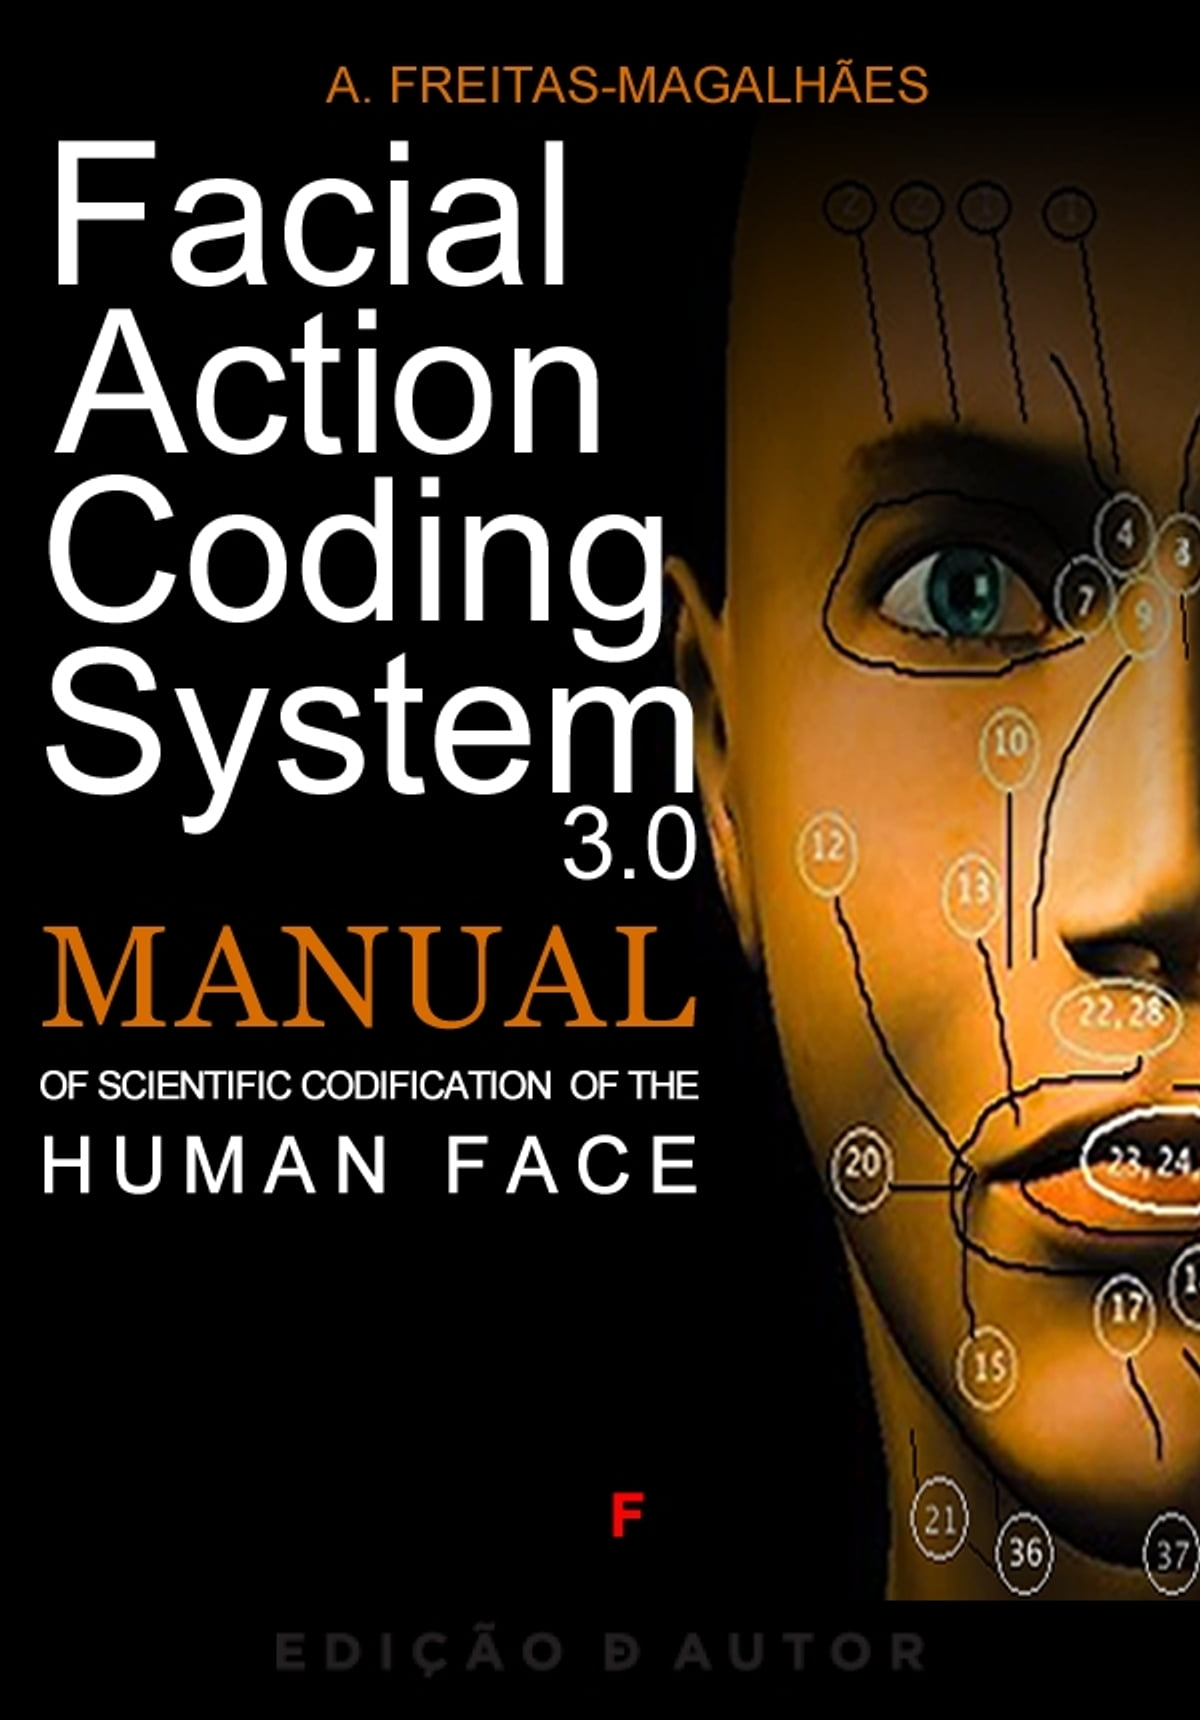 facial-action-coding-system-manual